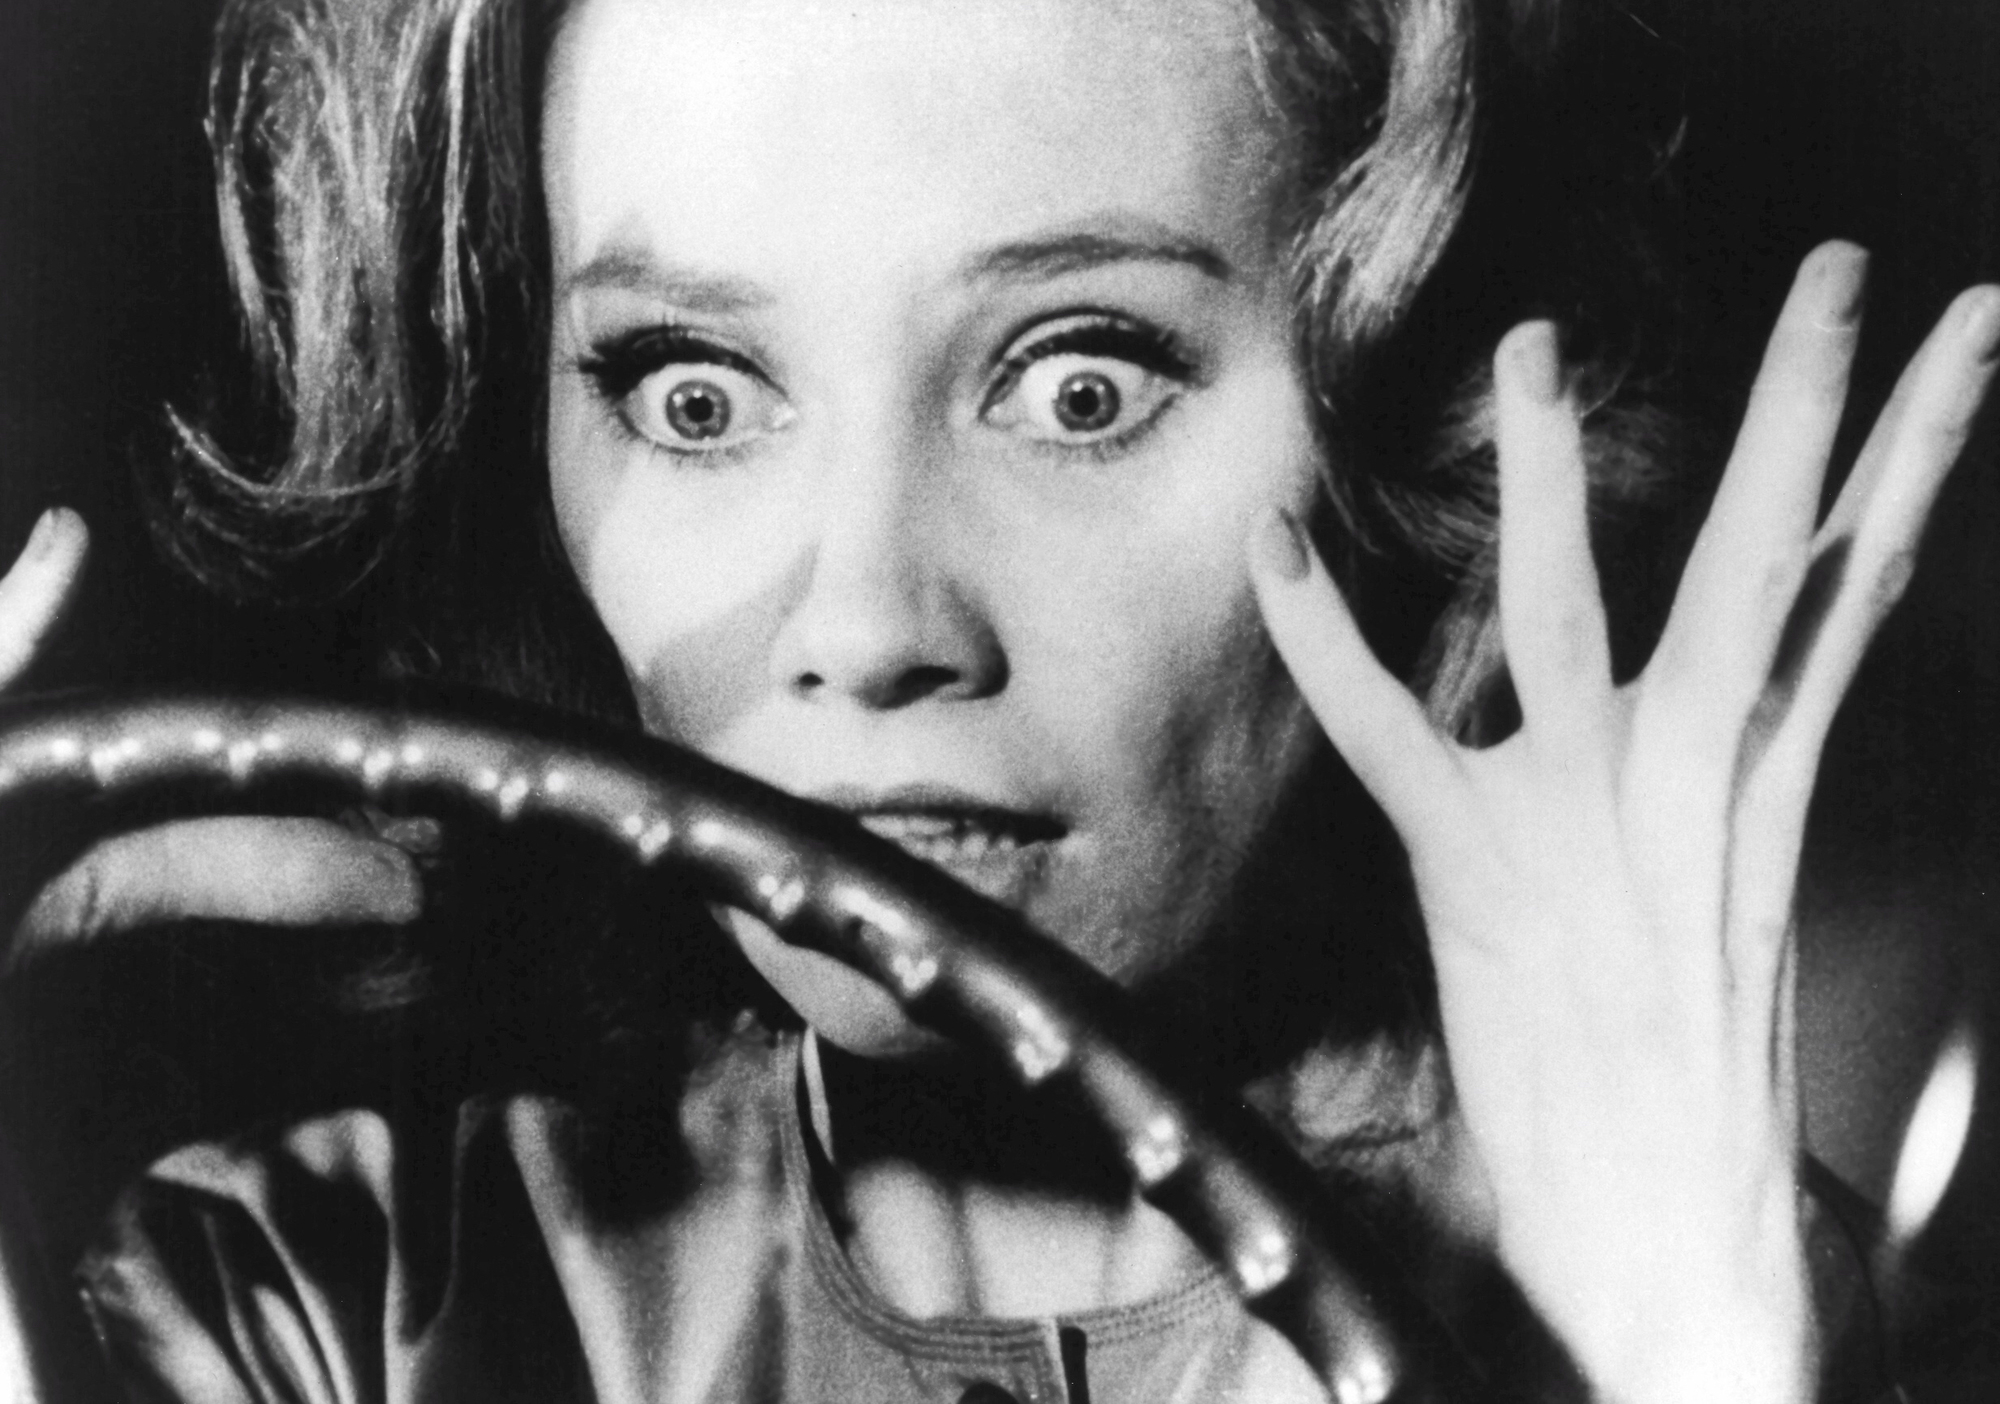 Carnival of Souls  still: Candace Hilligoss (as Mary Henry) freaking out in her car.